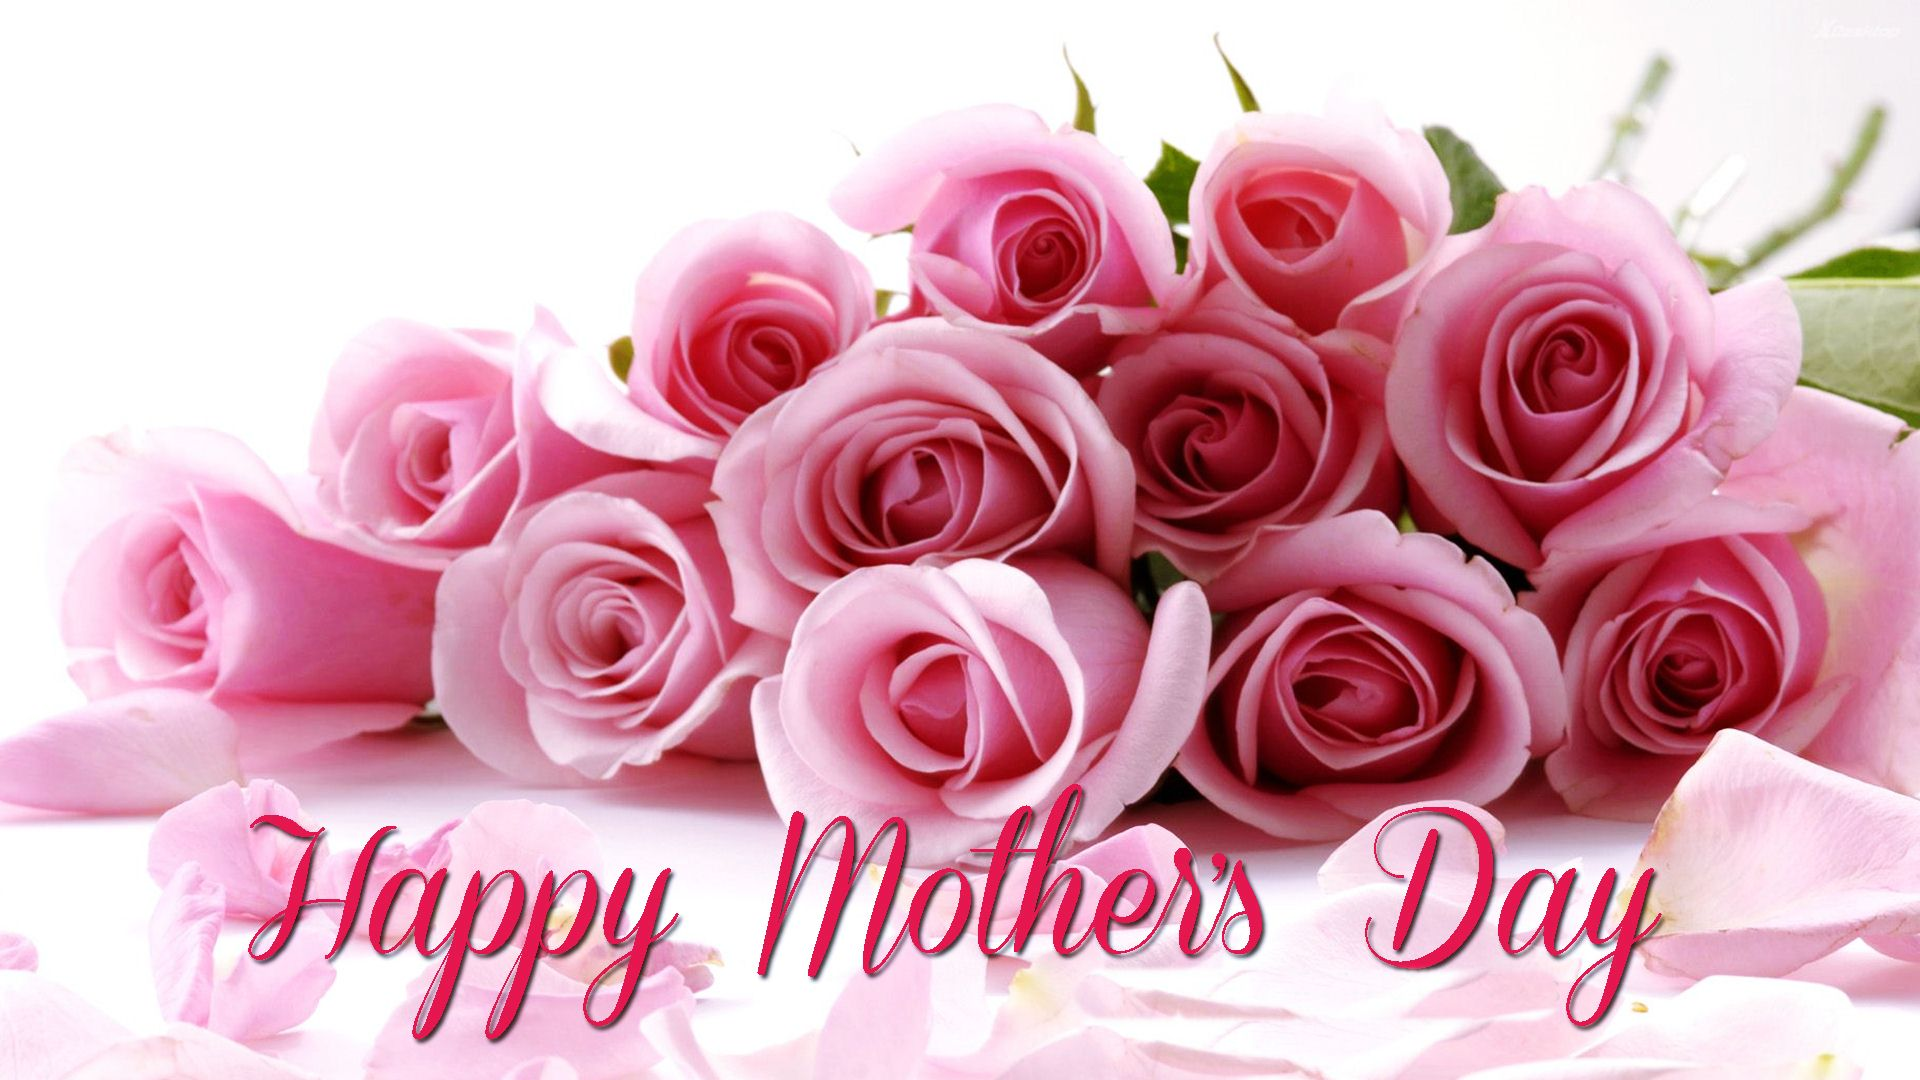 Happy Mothers Day Wallpaper Images